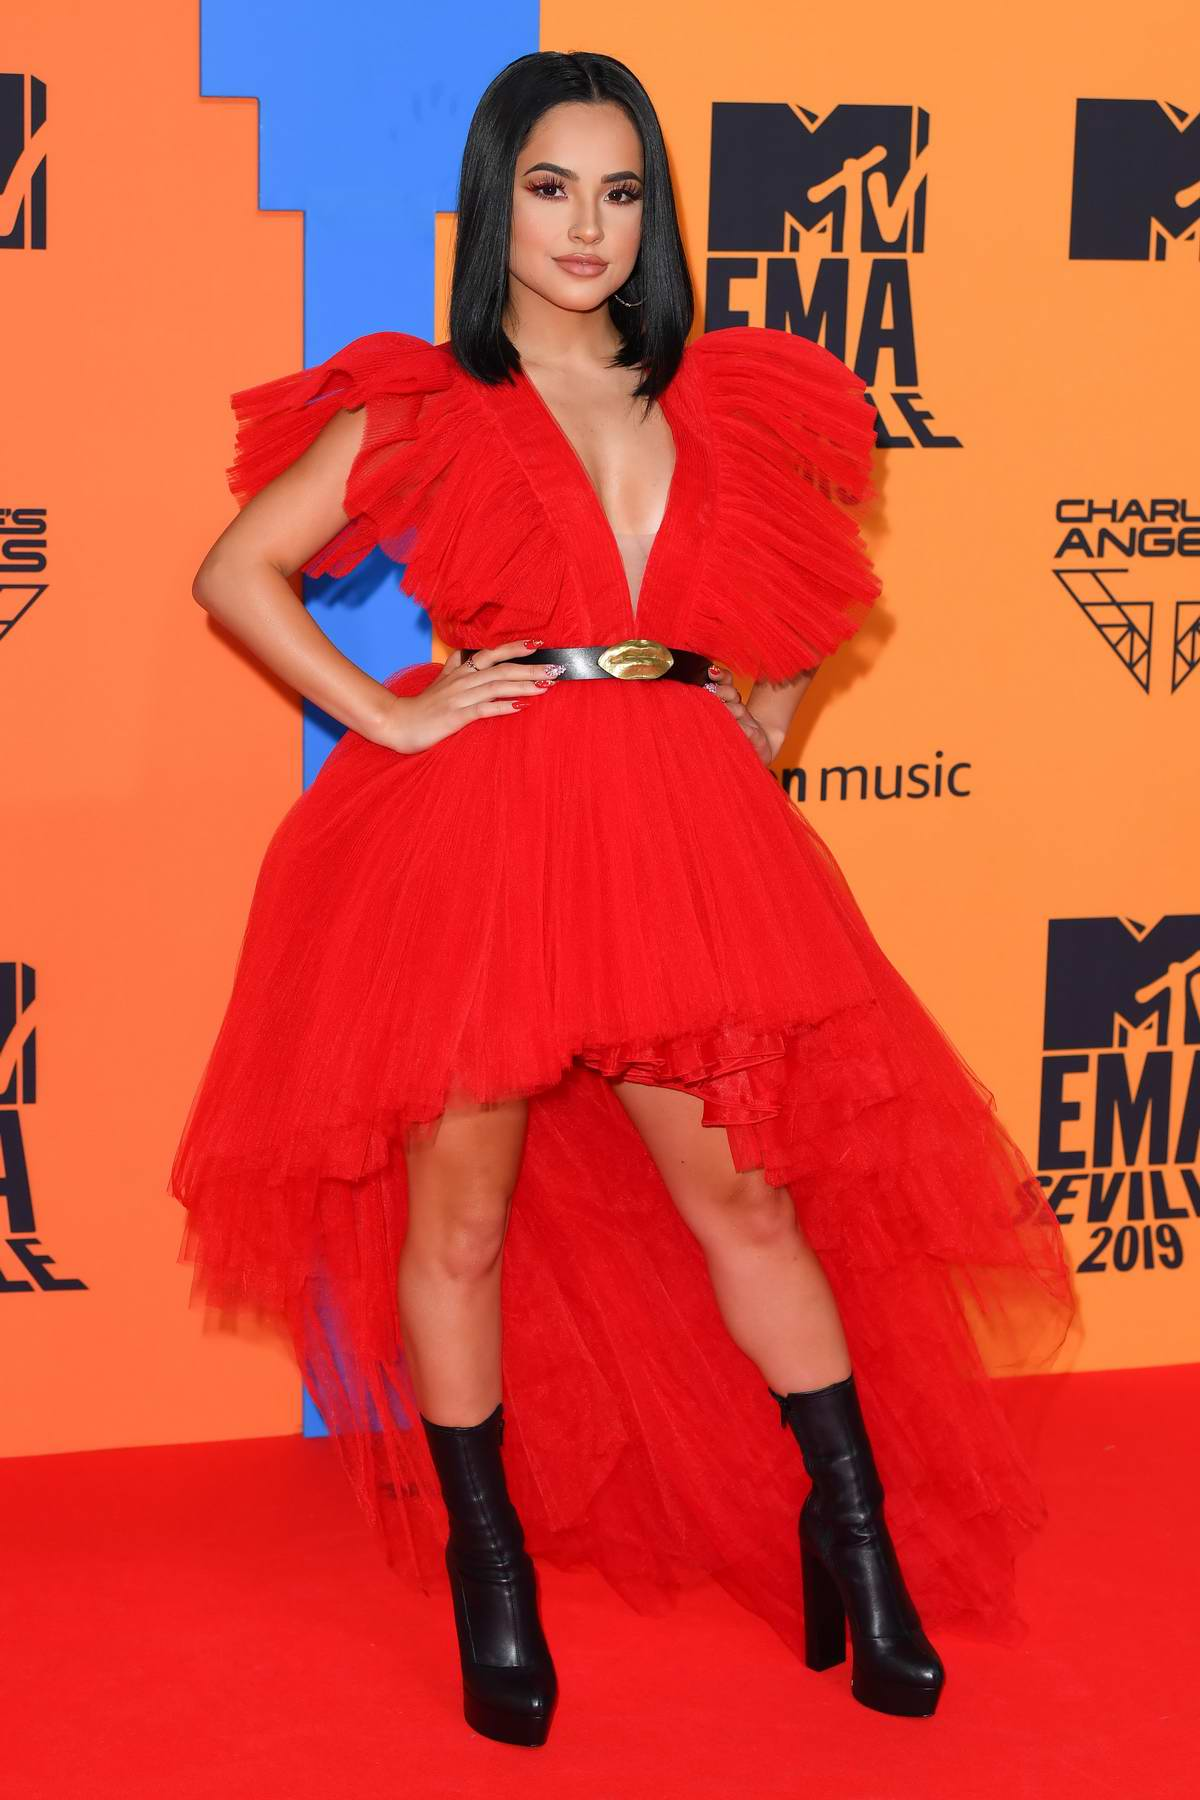 Becky G attends the MTV European Music Awards 2019 at FIBES Conference and Exhibition Centre in Seville, Spain